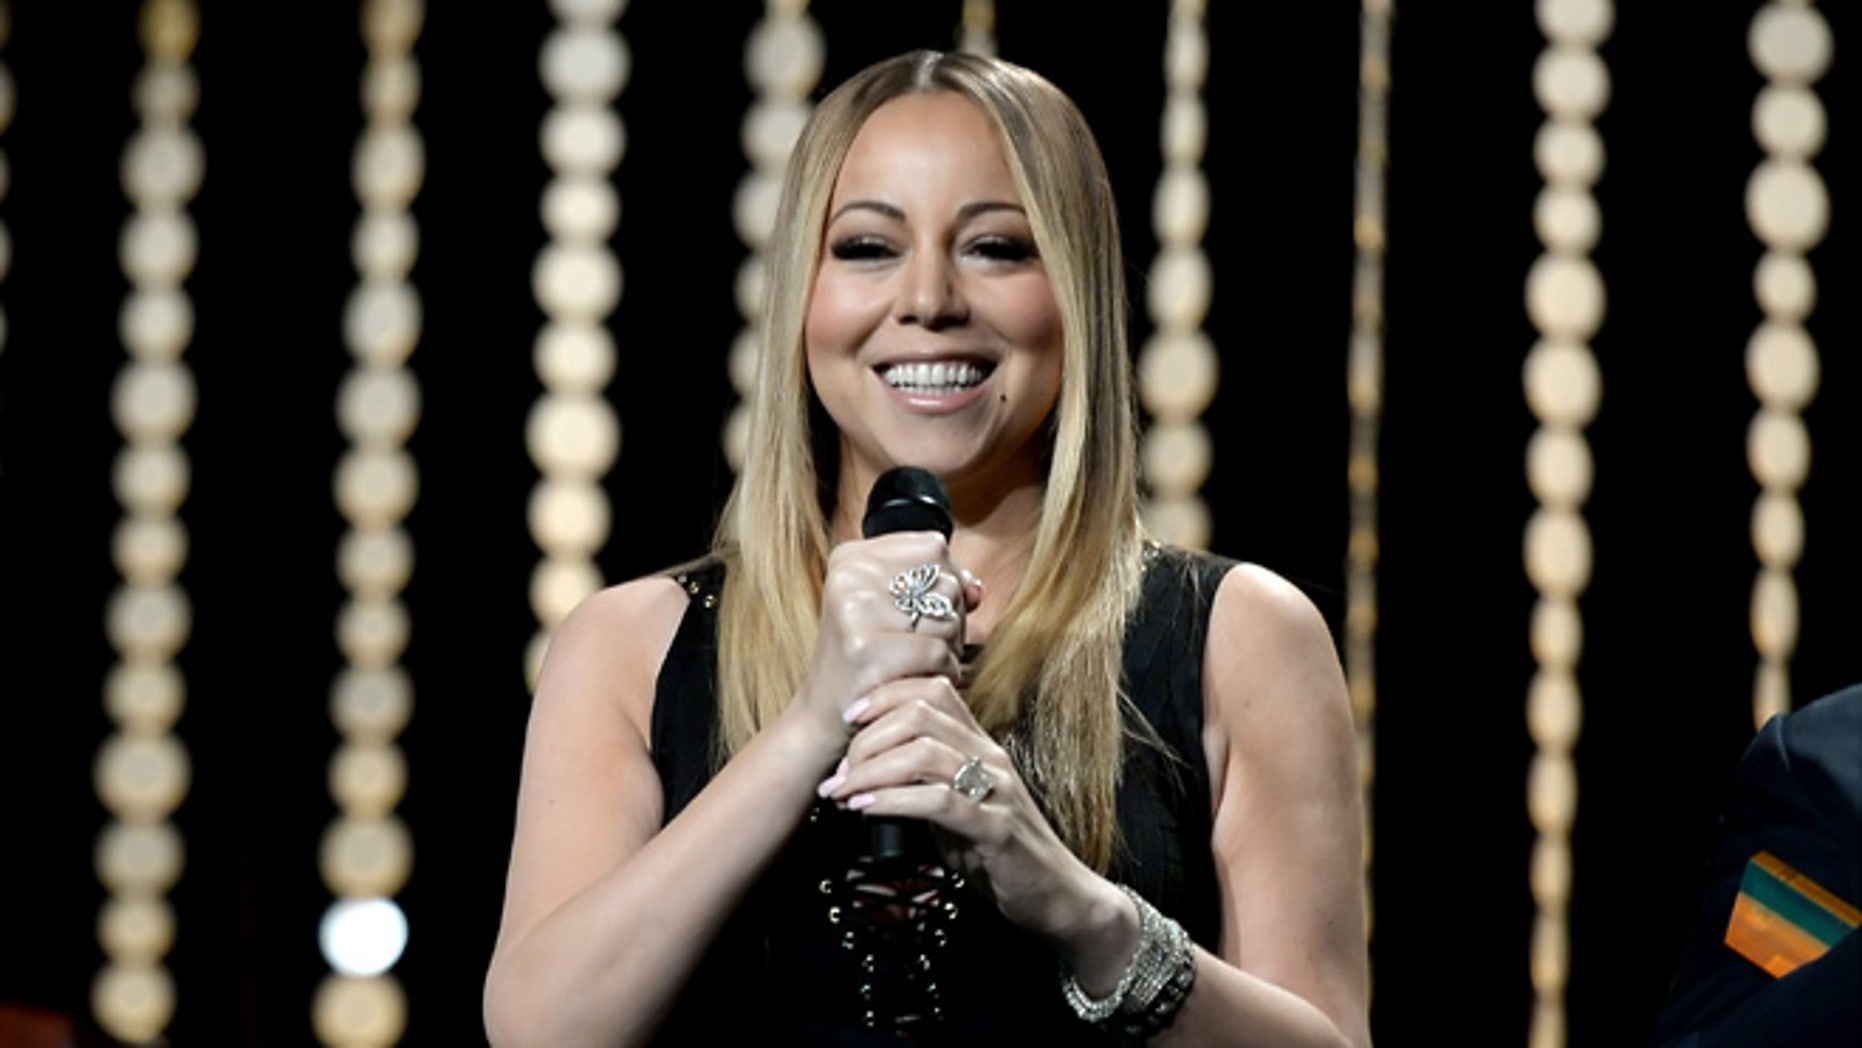 BEVERLY HILLS, CA - MARCH 07:  Singer Mariah Carey performs onstage during the Venice Family Clinic Silver Circle Gala 2016 honoring Brett Ratner and Bill Flumenbaum at The Beverly Hilton Hotel on March 7, 2016 in Beverly Hills, California.  (Photo by Kevin Winter/Getty Images)